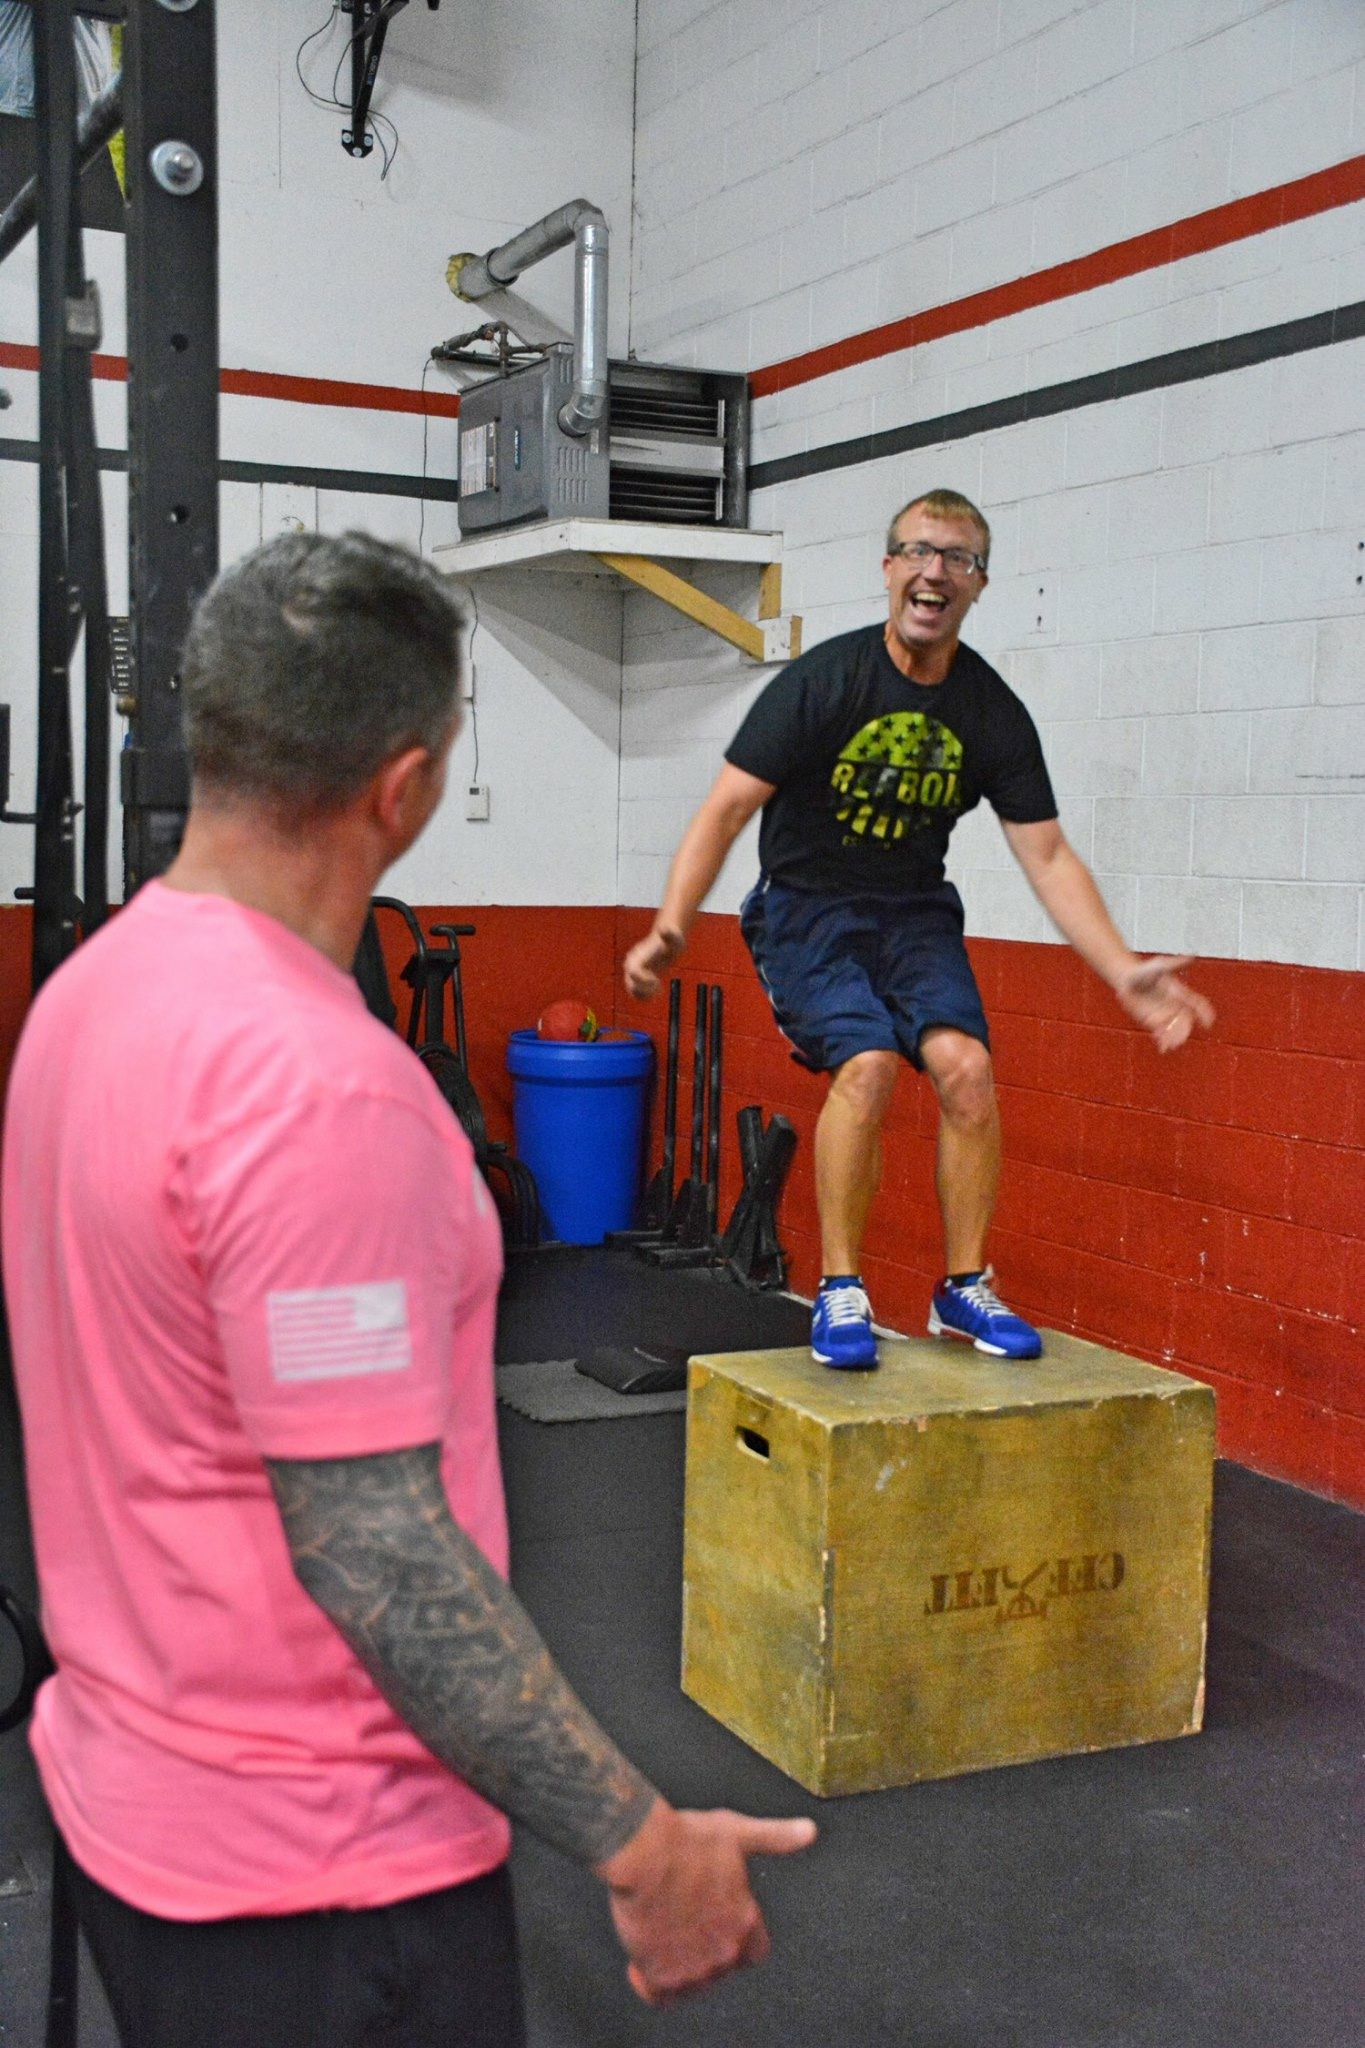 Friday, October 26 WOD